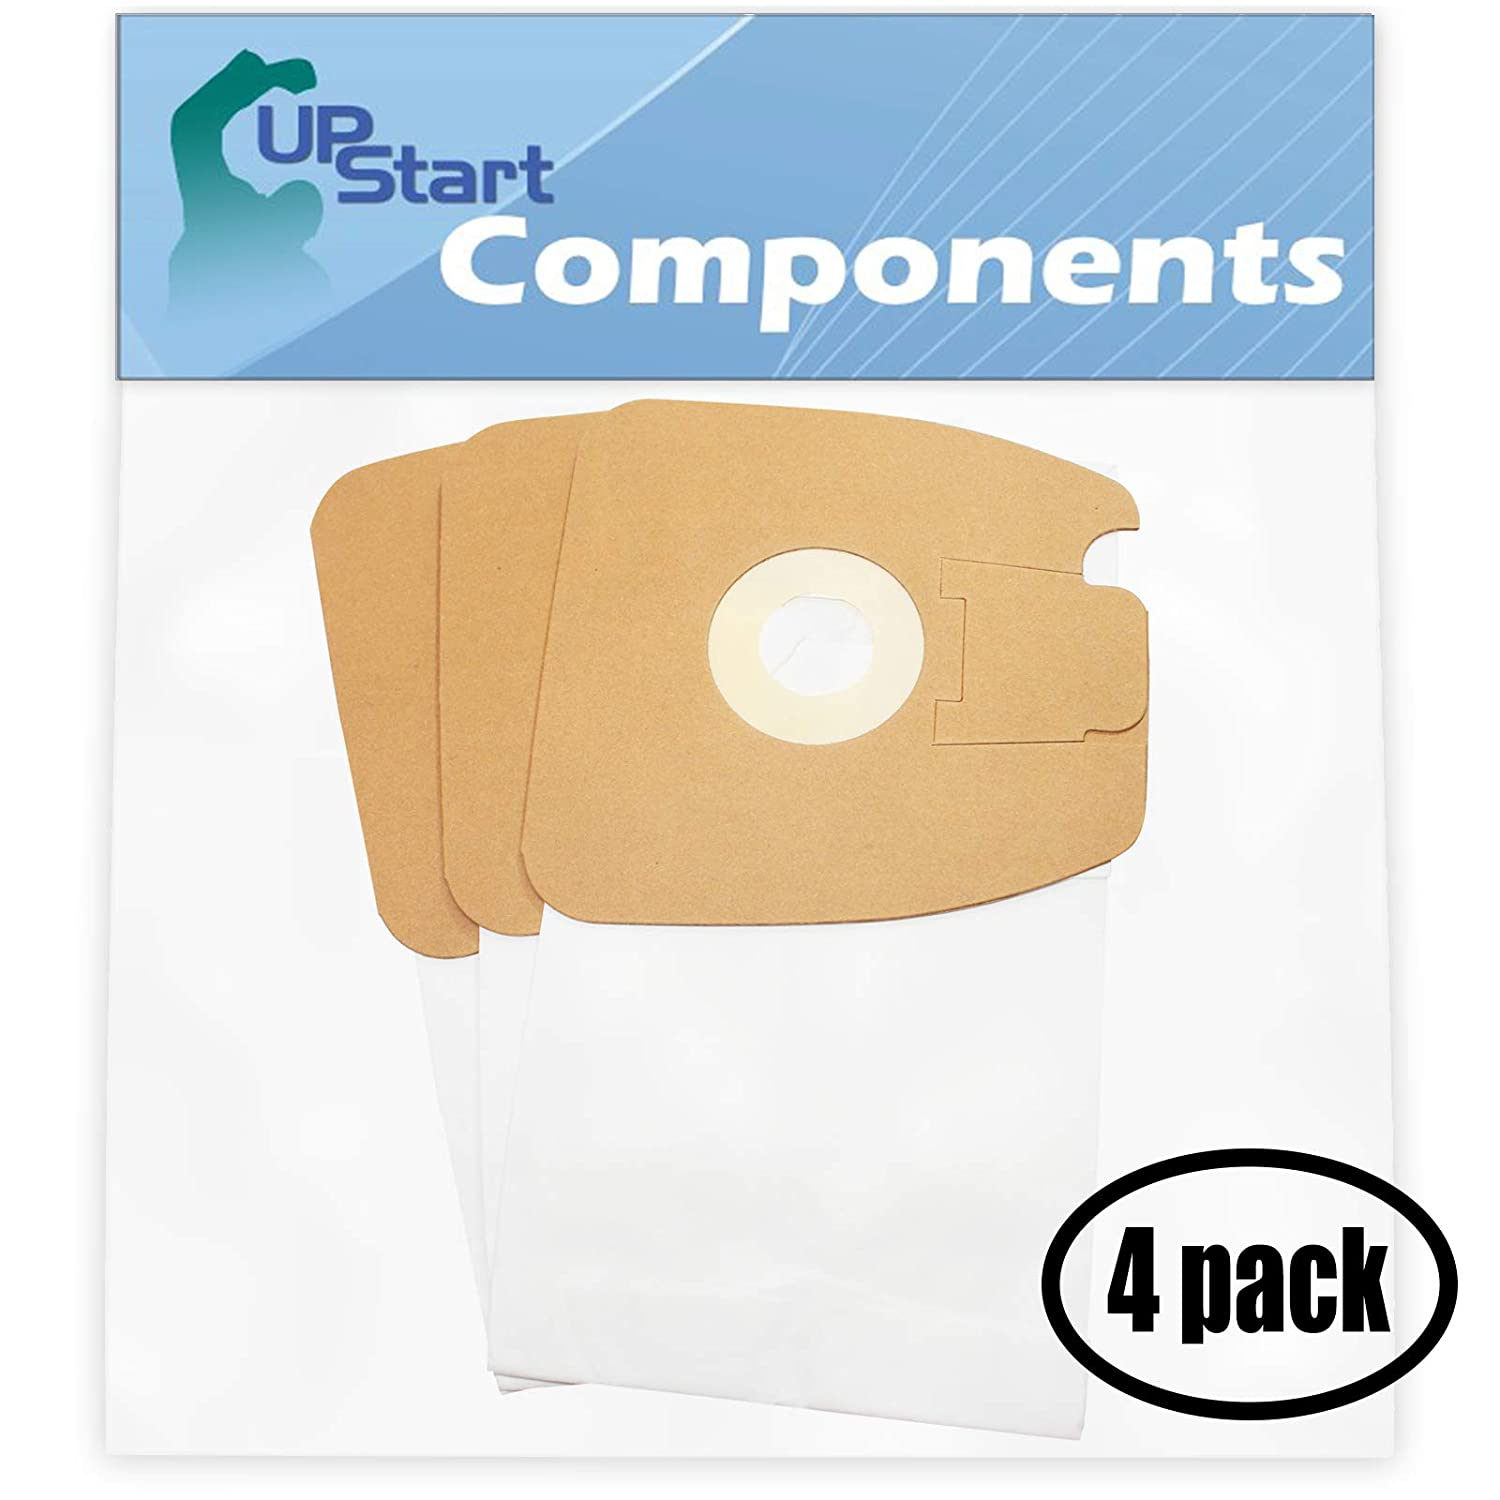 12 Replacement MM Bags 60295C for Eureka, Sanitaire - Compatible with Eureka 3670G, Sanitaire SC3683A, Eureka Mighty Mite Pet Lover 3684F, Eureka Mighty Mite 3670G, Eureka 3684F, Sanitaire SC3683, Sanitaire S3681, Eureka Style MM, Eureka 3670A, Eureka 3684B, Eureka Mighty Mite 3684F